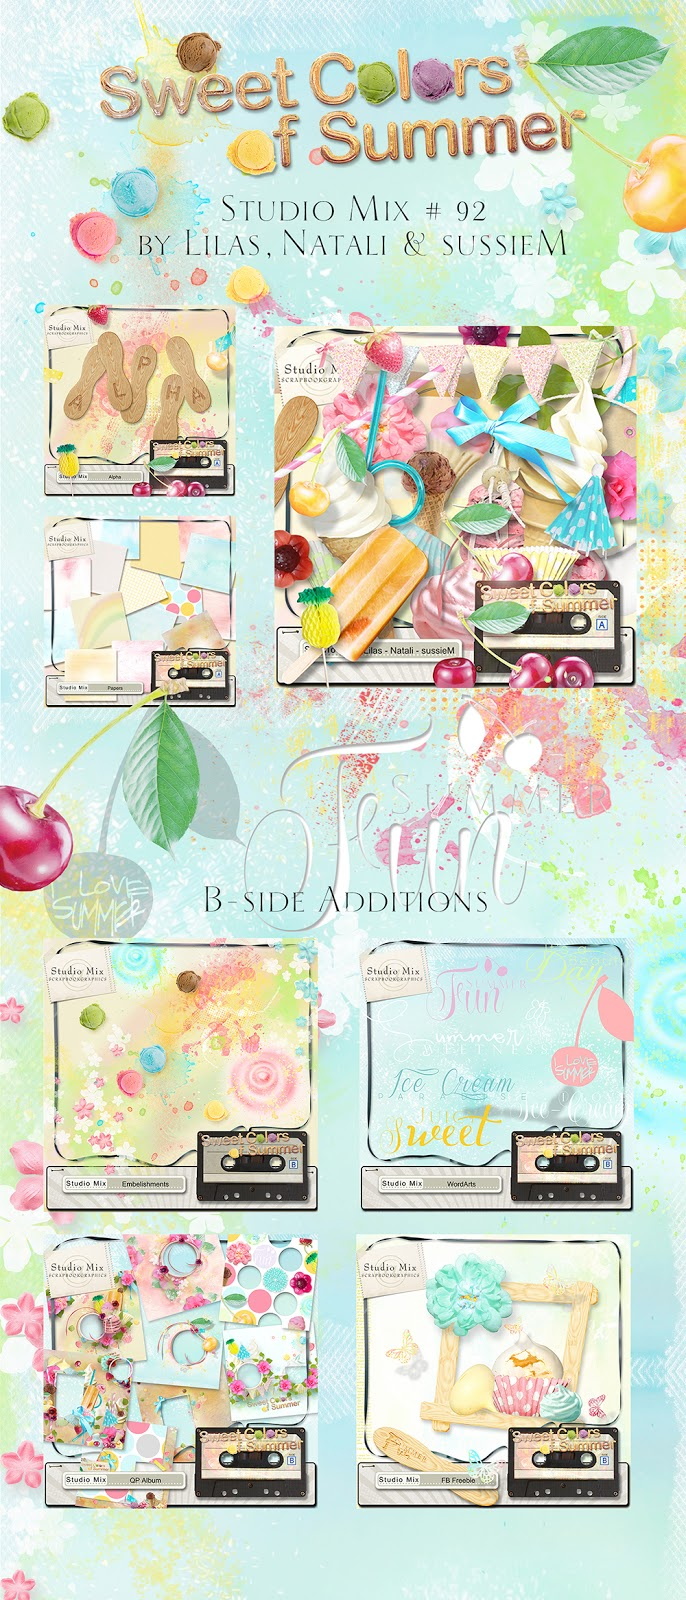 http://shop.scrapbookgraphics.com/Studio-Mix-92-Sweet-Colors-of-Summer.html